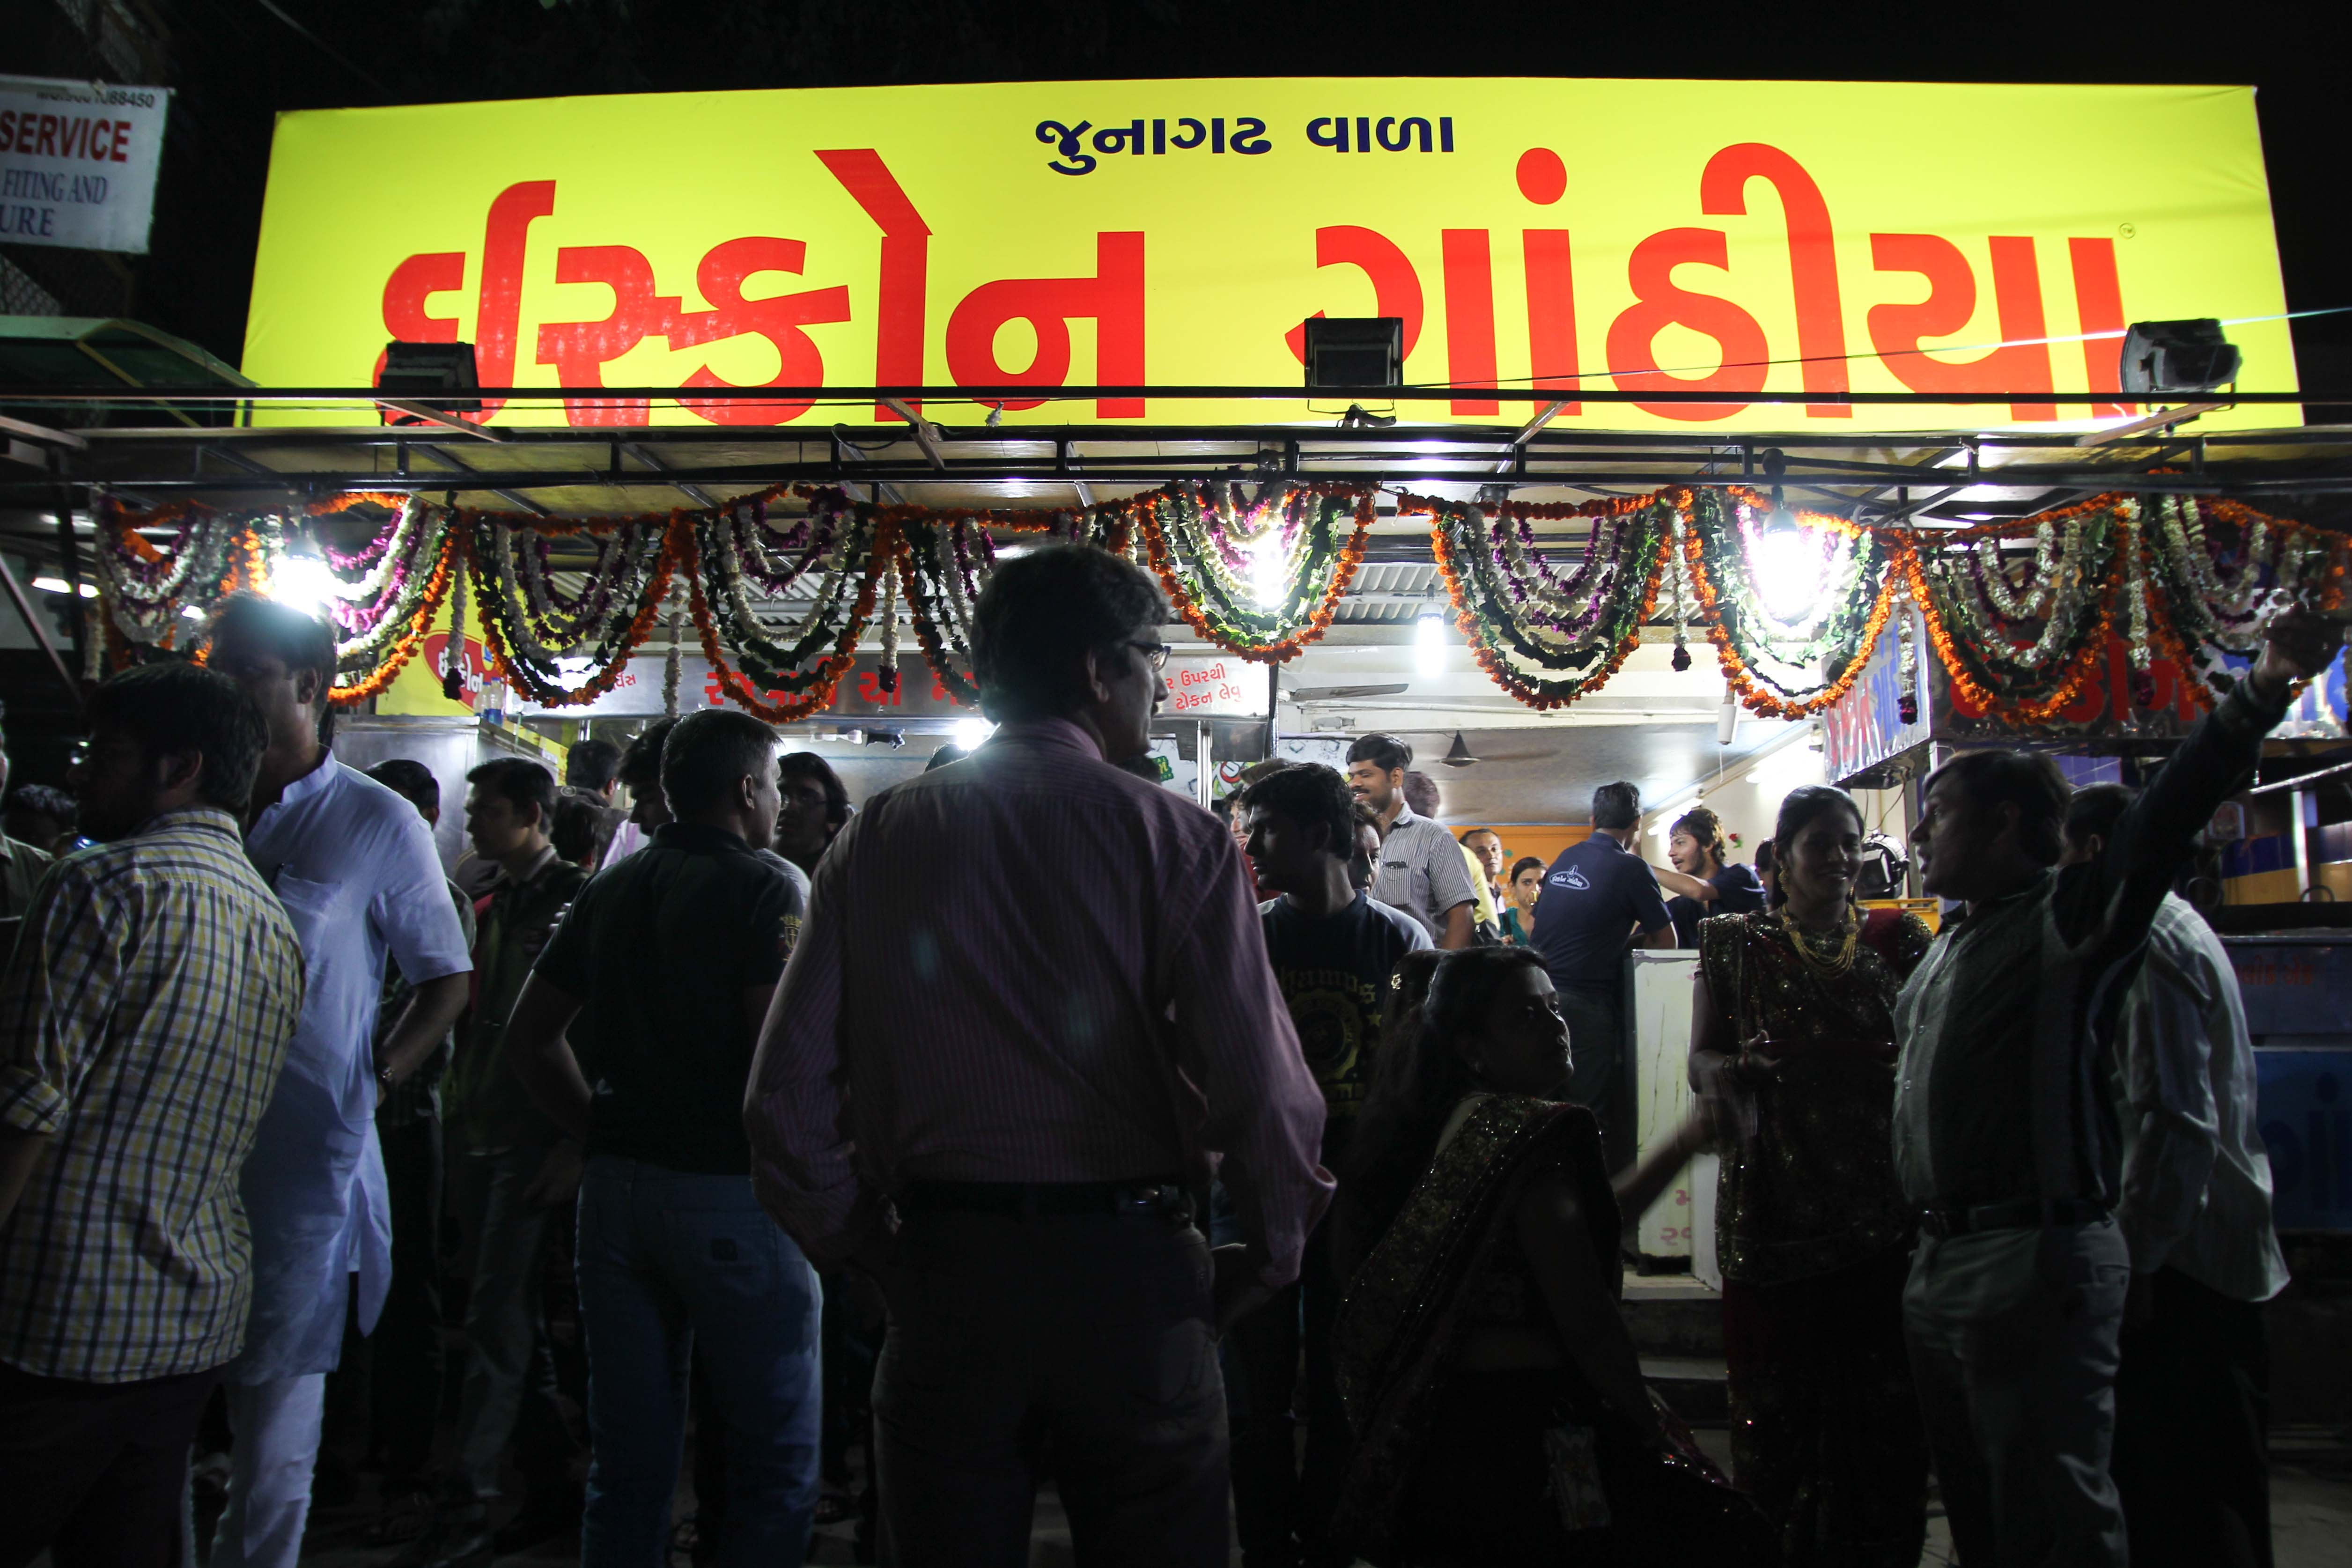 Iscon Ganthiya is a popular kitli, or tea stall, in Ahmedabad, Gujarat, where locals gather all hours of the night.